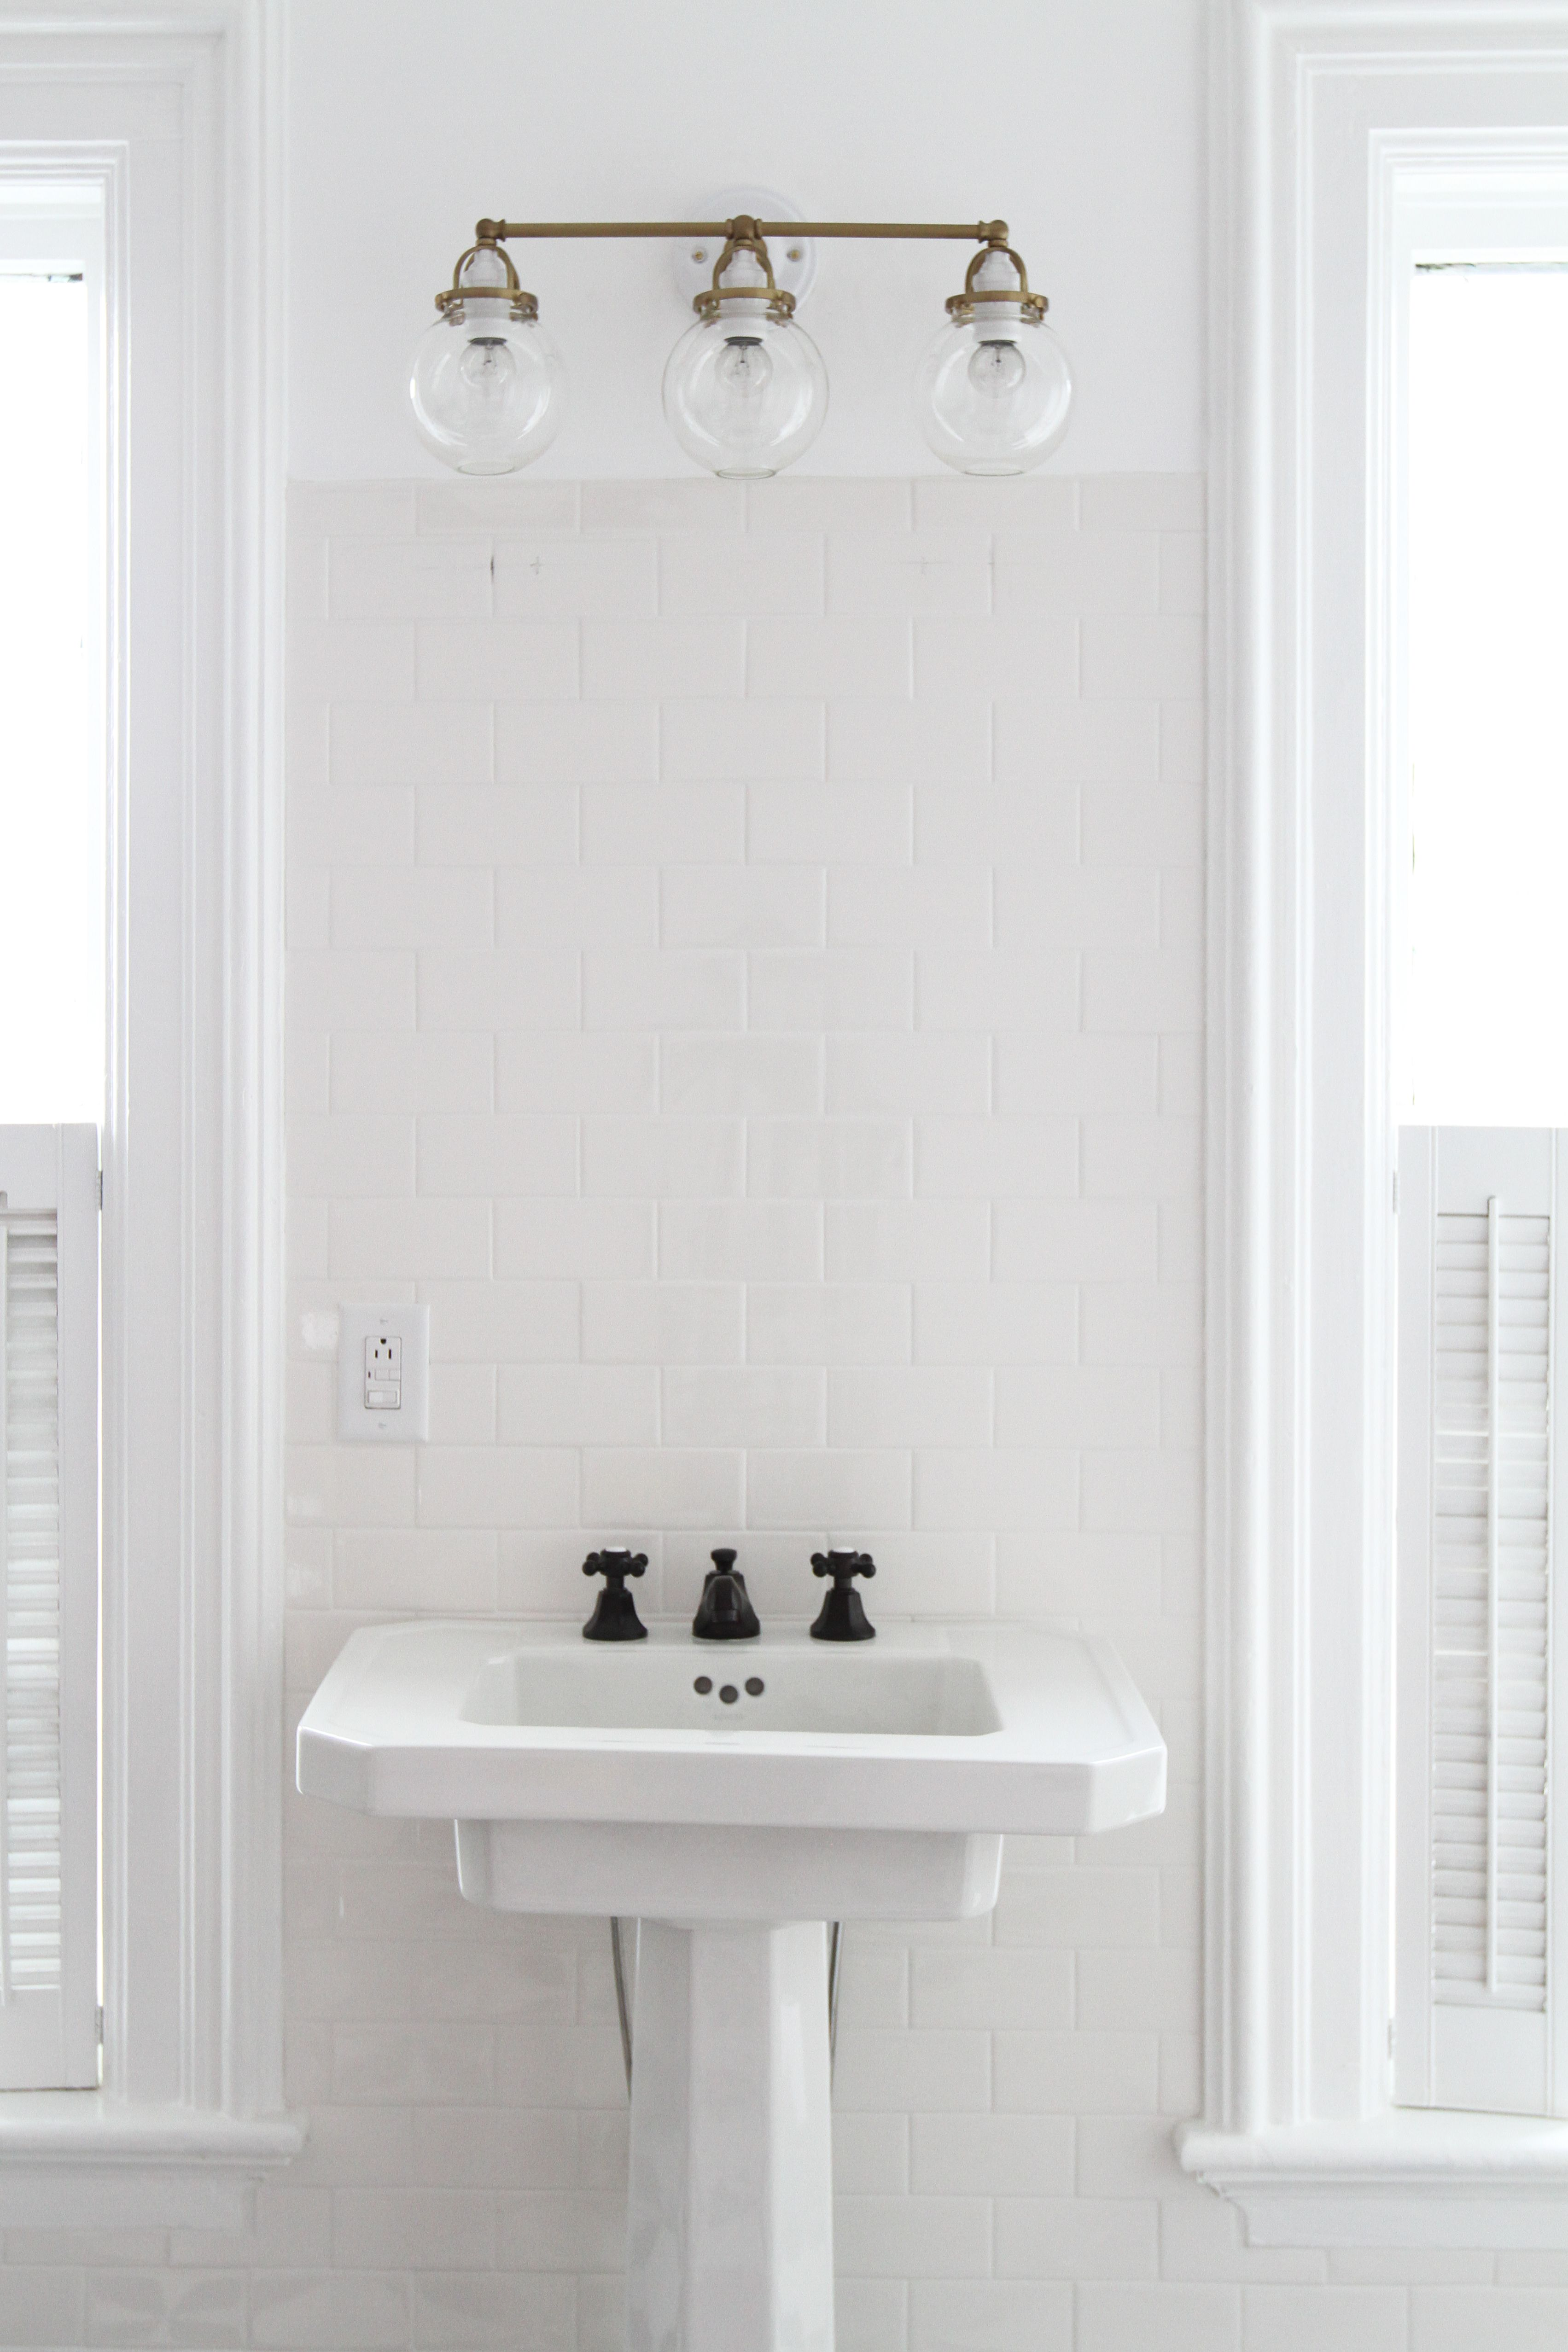 How to Hang a Bathroom Mirror on Ceramic Tile — Apartment Therapy ...